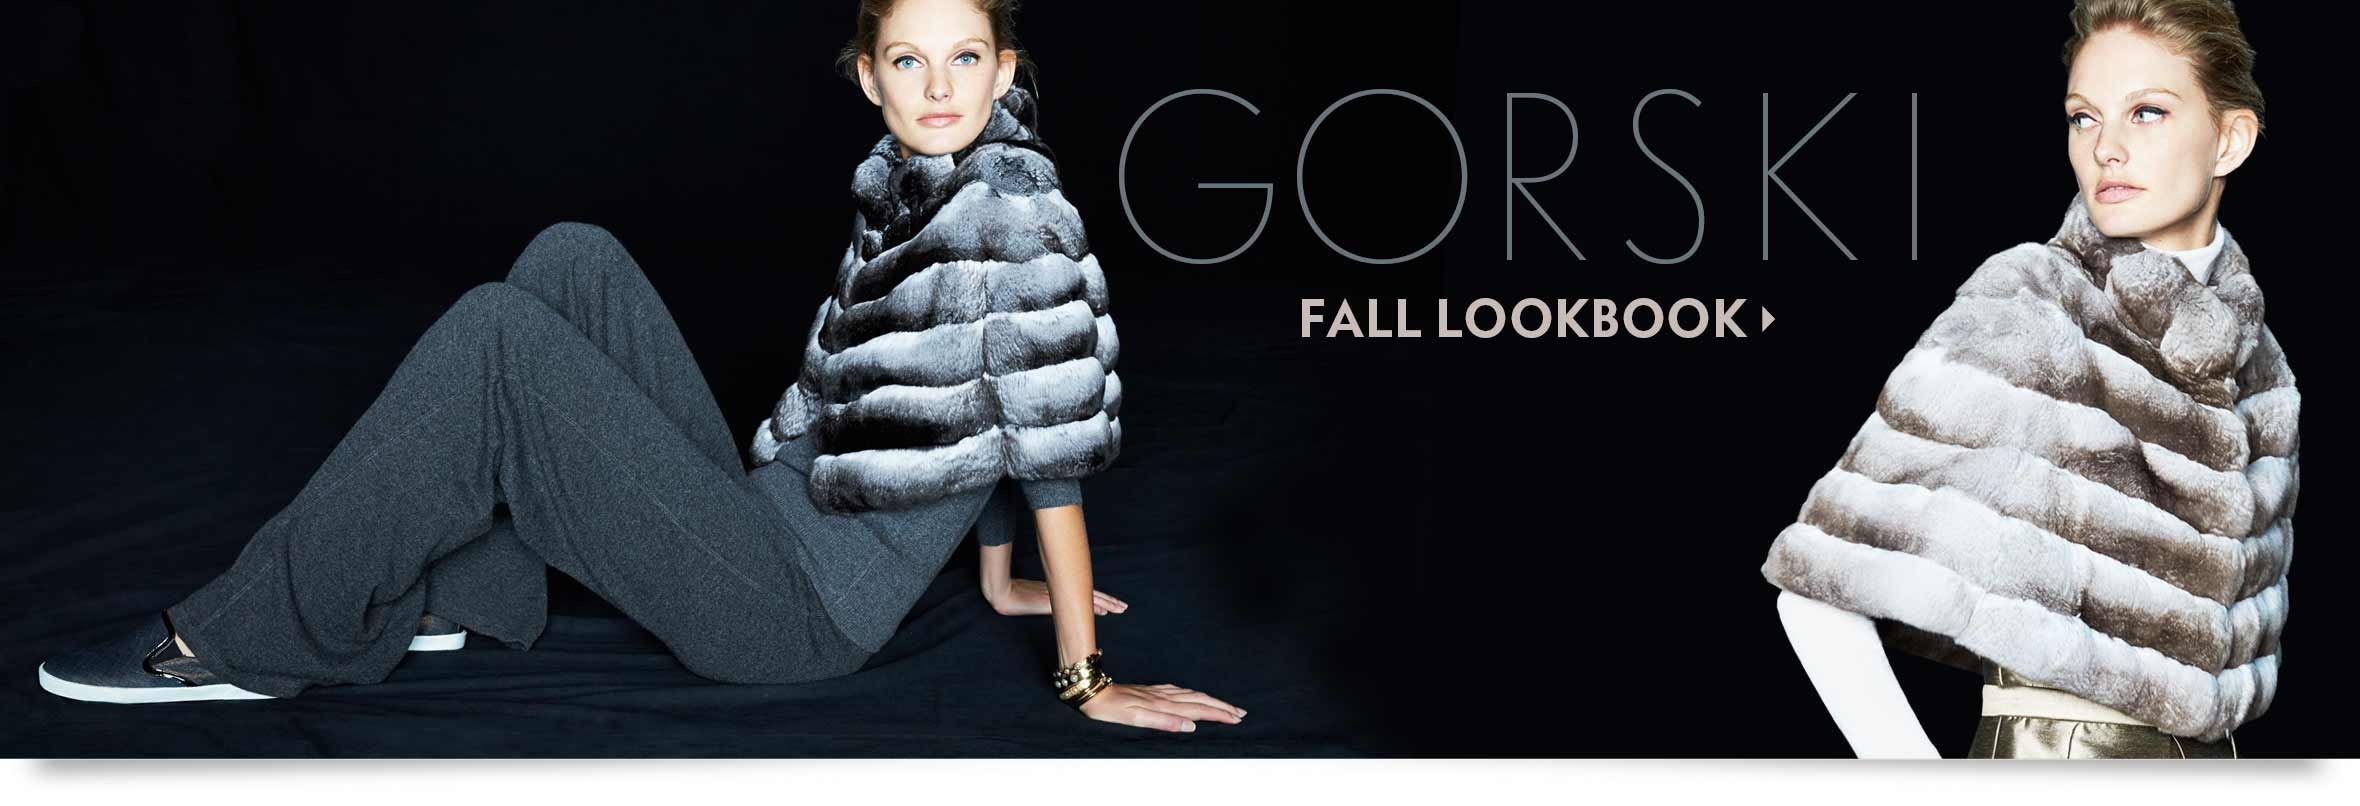 Gorski Fall Lookbook